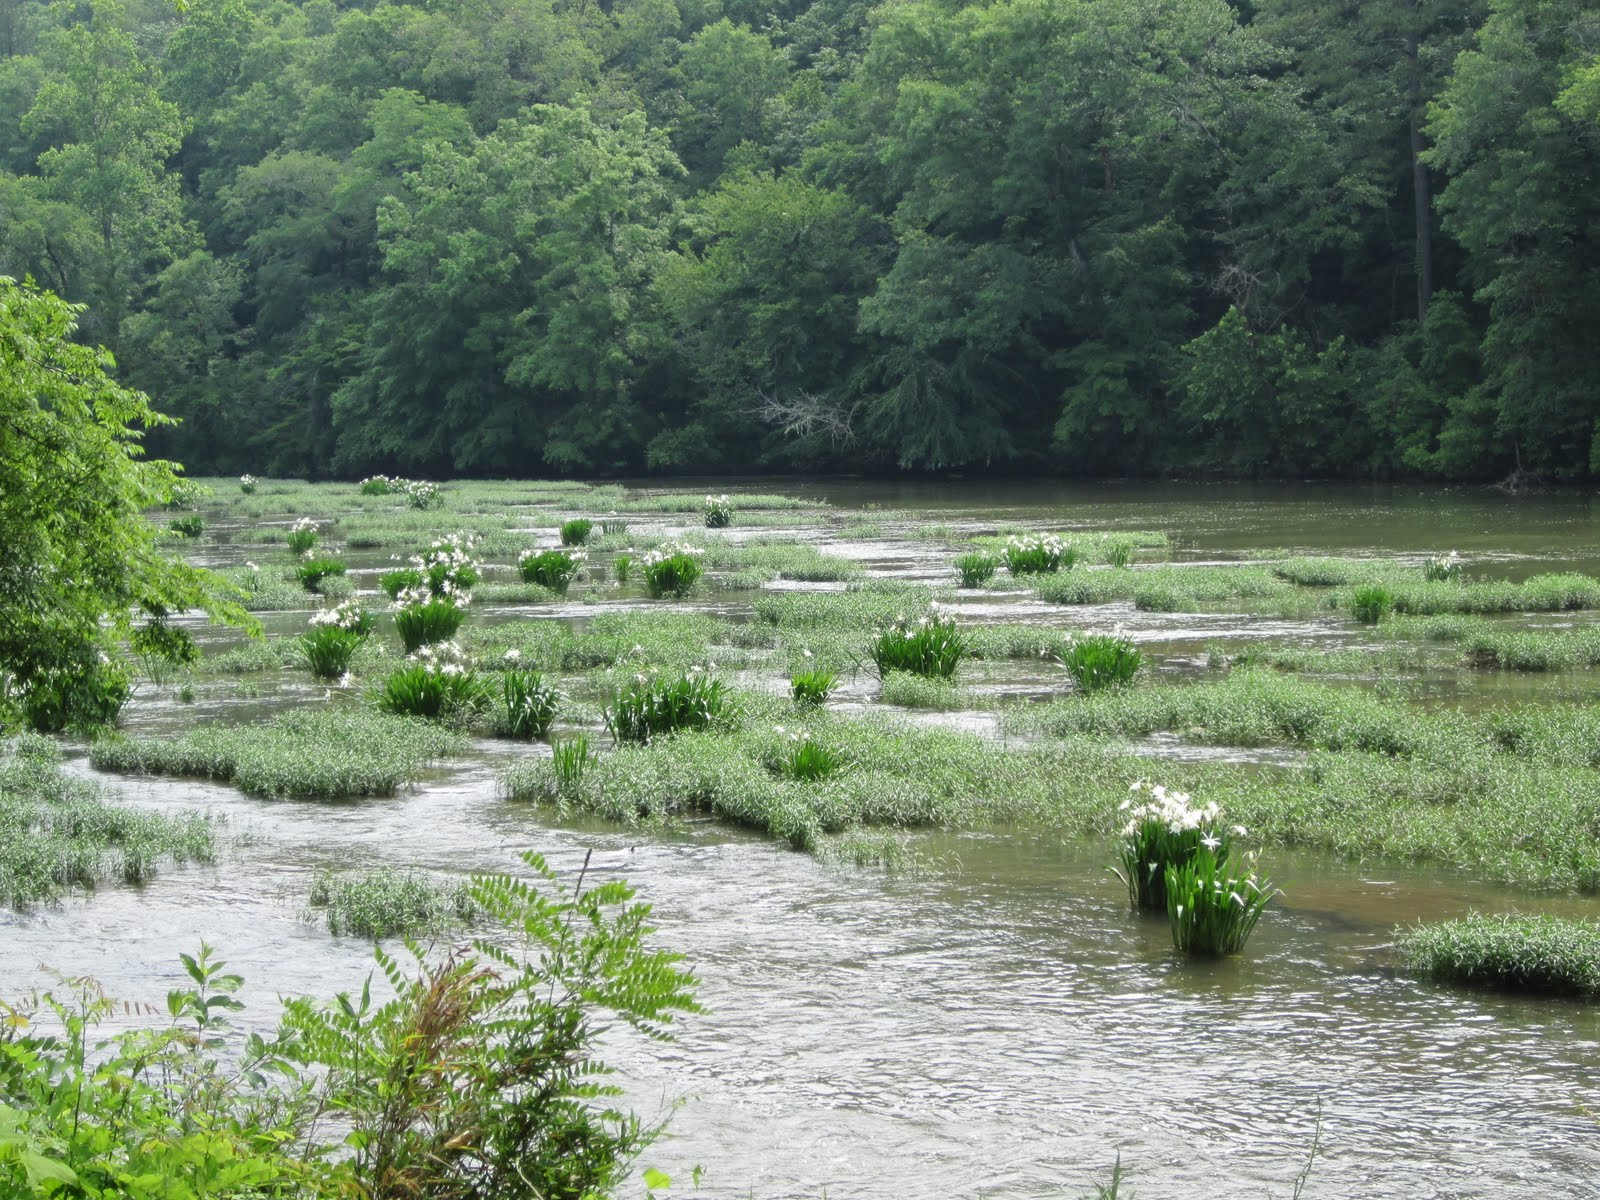 Where could i find a good article explaining cahaba river pollution?